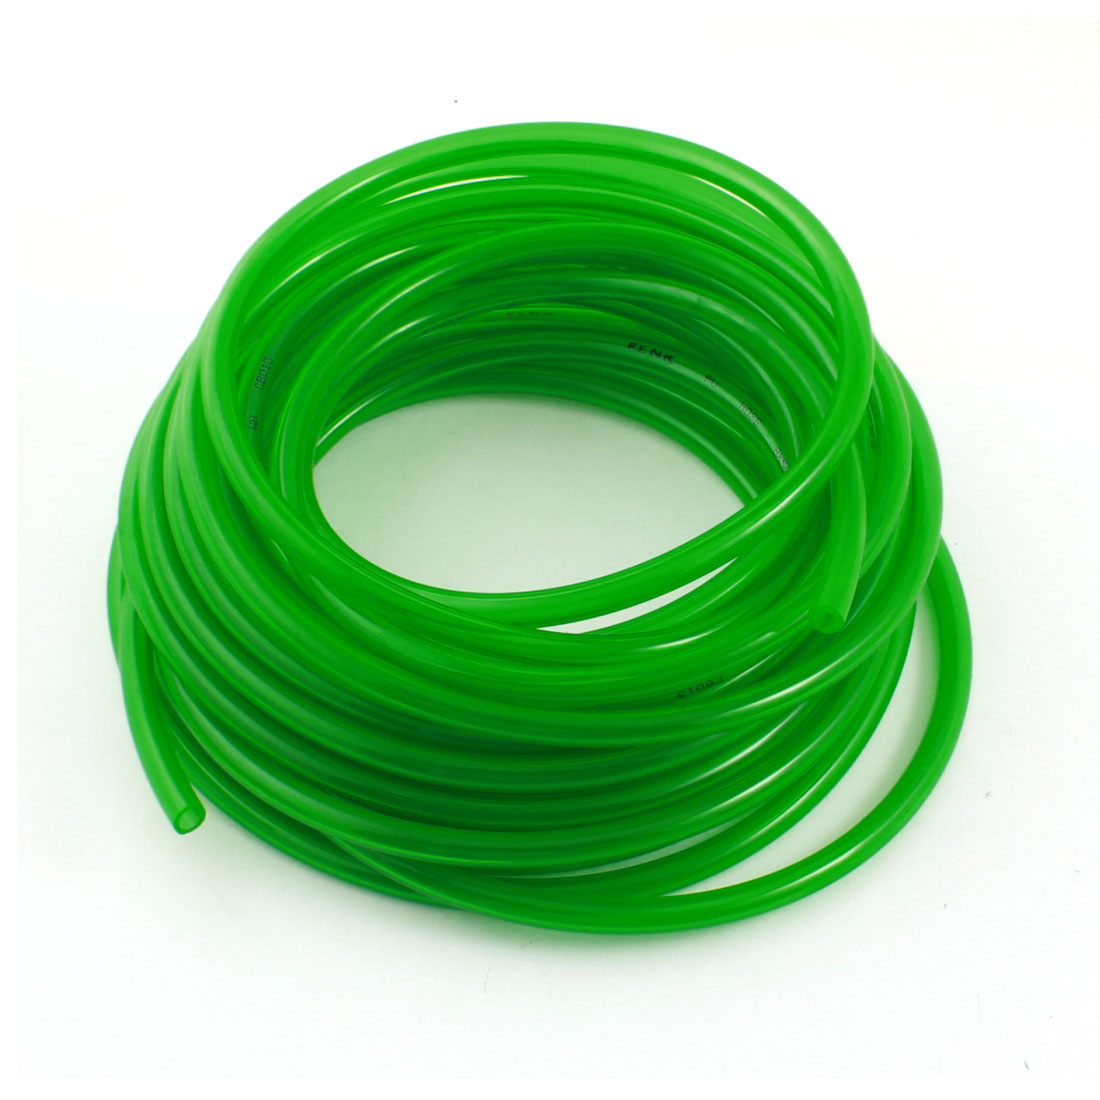 Engine Gas Fuel Oil Injection PU Hose Tubing Tube 5mmx8mm Dia 33Ft Clear Green